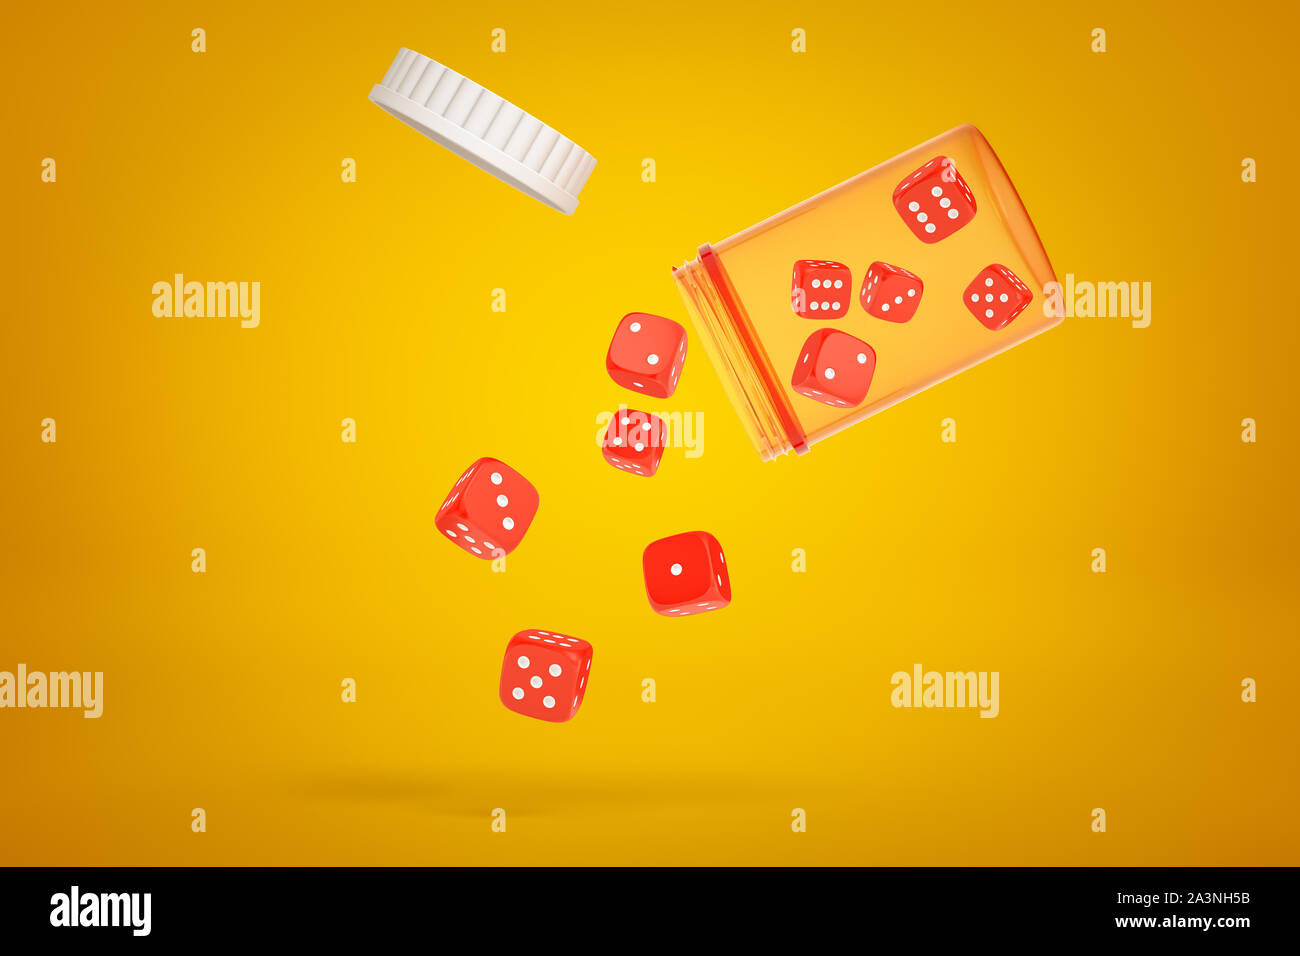 3d Rendering Of Red Casino Dice Falling From A Plastic Jar On Yellow Background Stock Photo Alamy